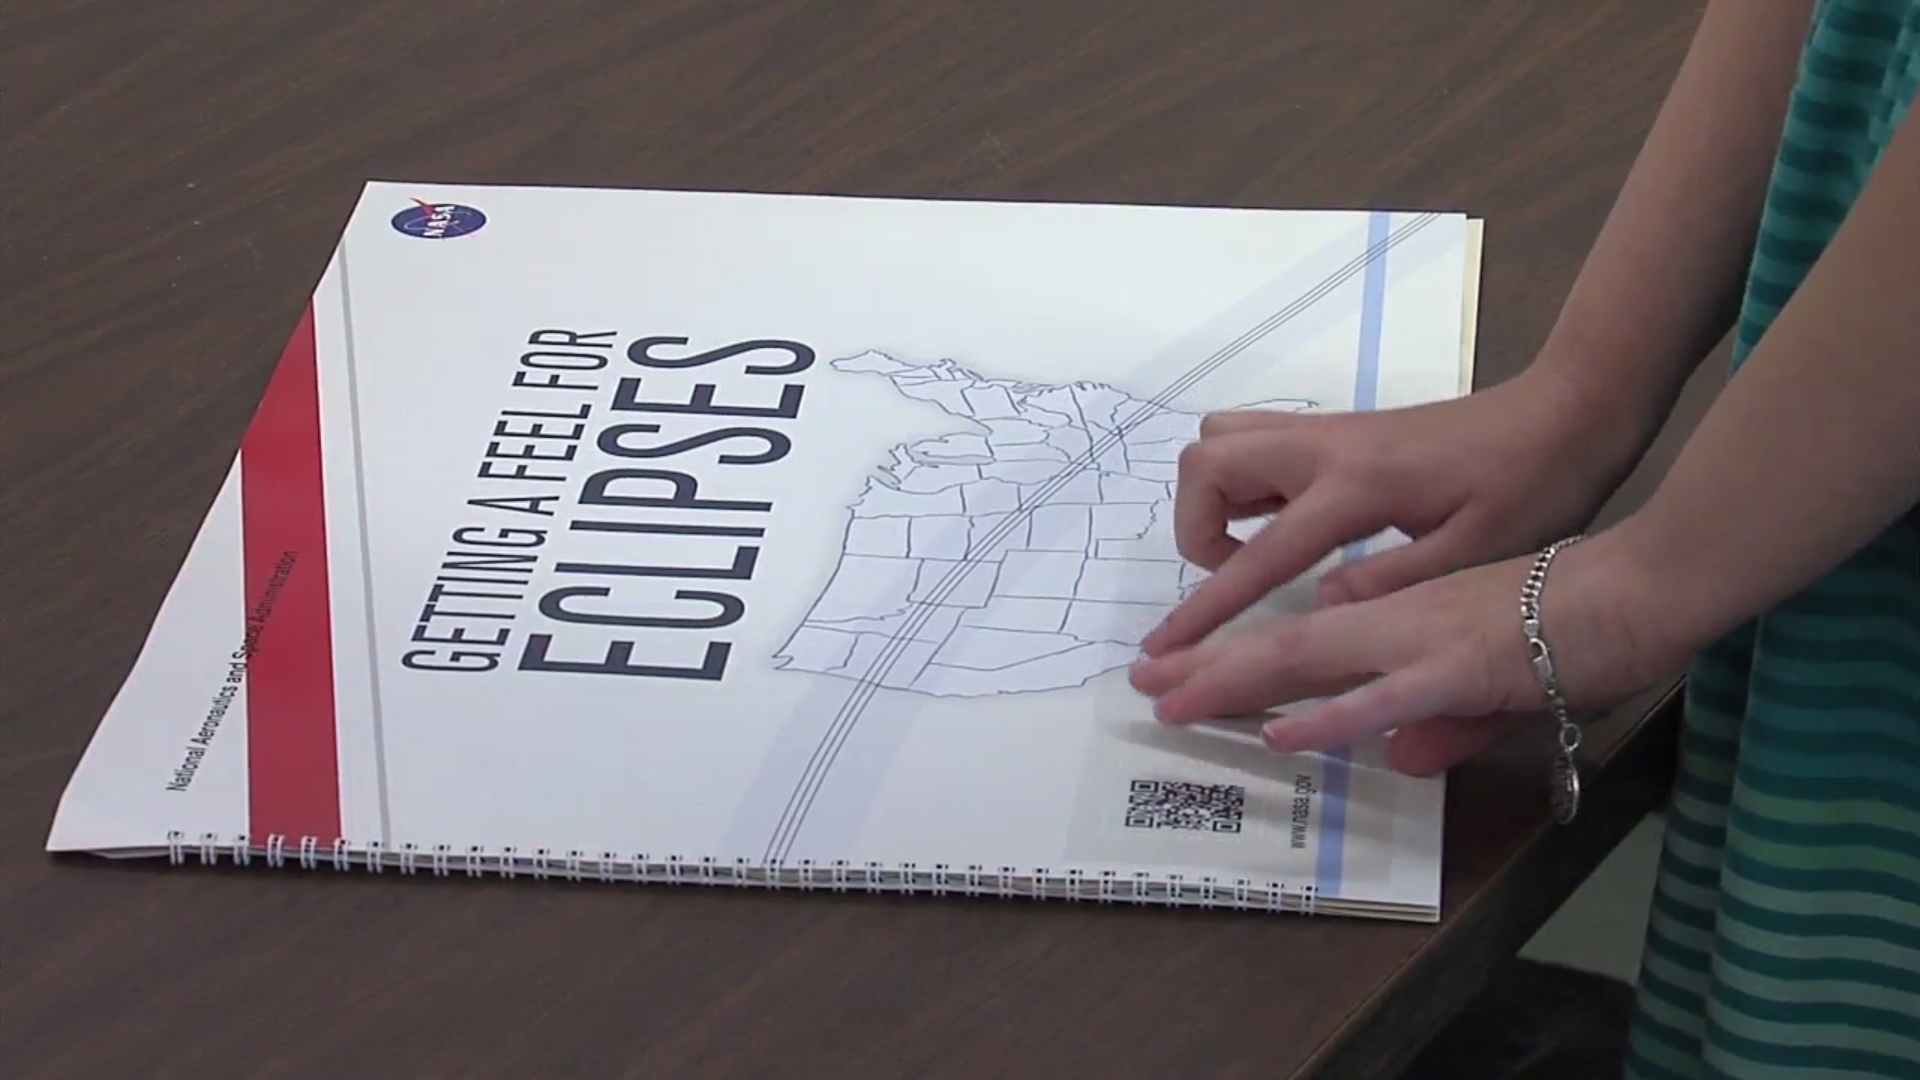 Mariah Williams is blind, but the eclipse has been brought to life for her by a NASA-sponsored tactile graphic book co-authored by one of her professors. (WCIV)